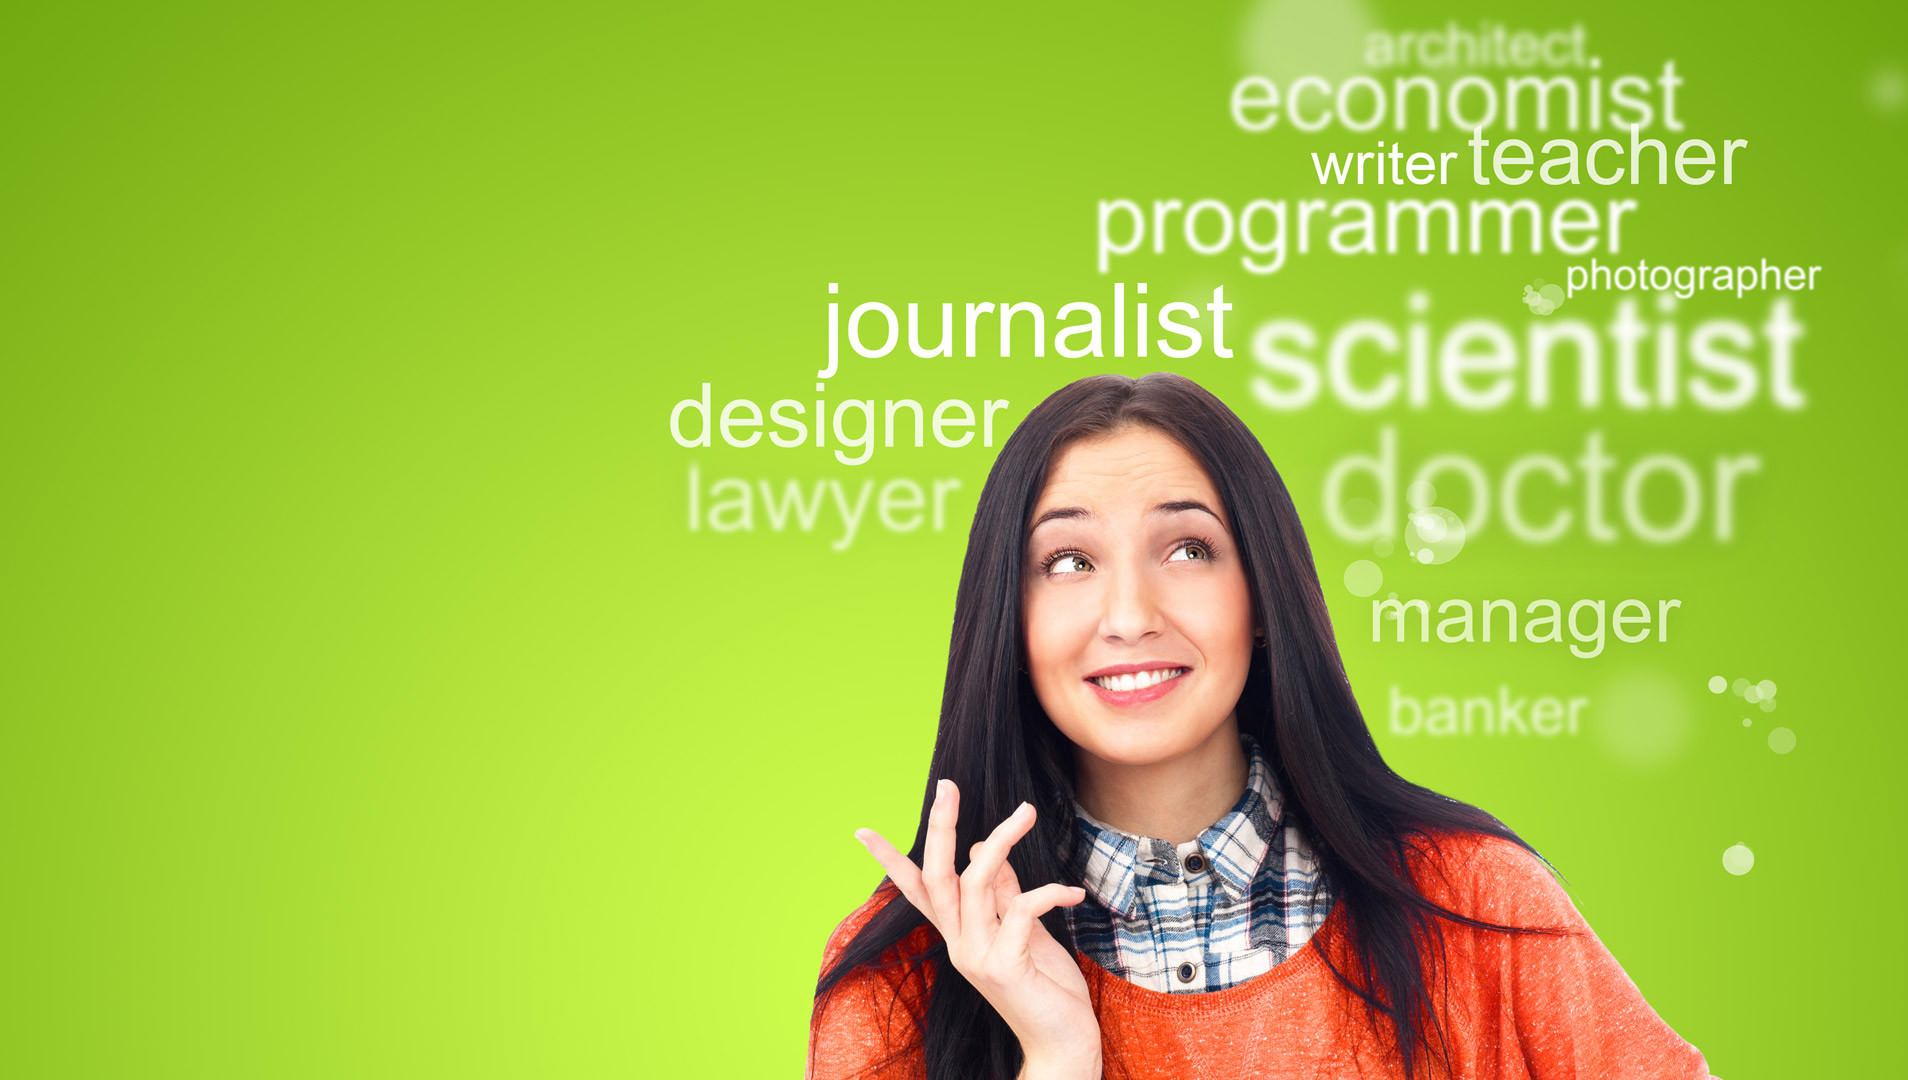 career choices for women in todays society Why are young adults so darn confused how society has made life difficult  career choices,  why psychotherapists fail to help people today  young men and.